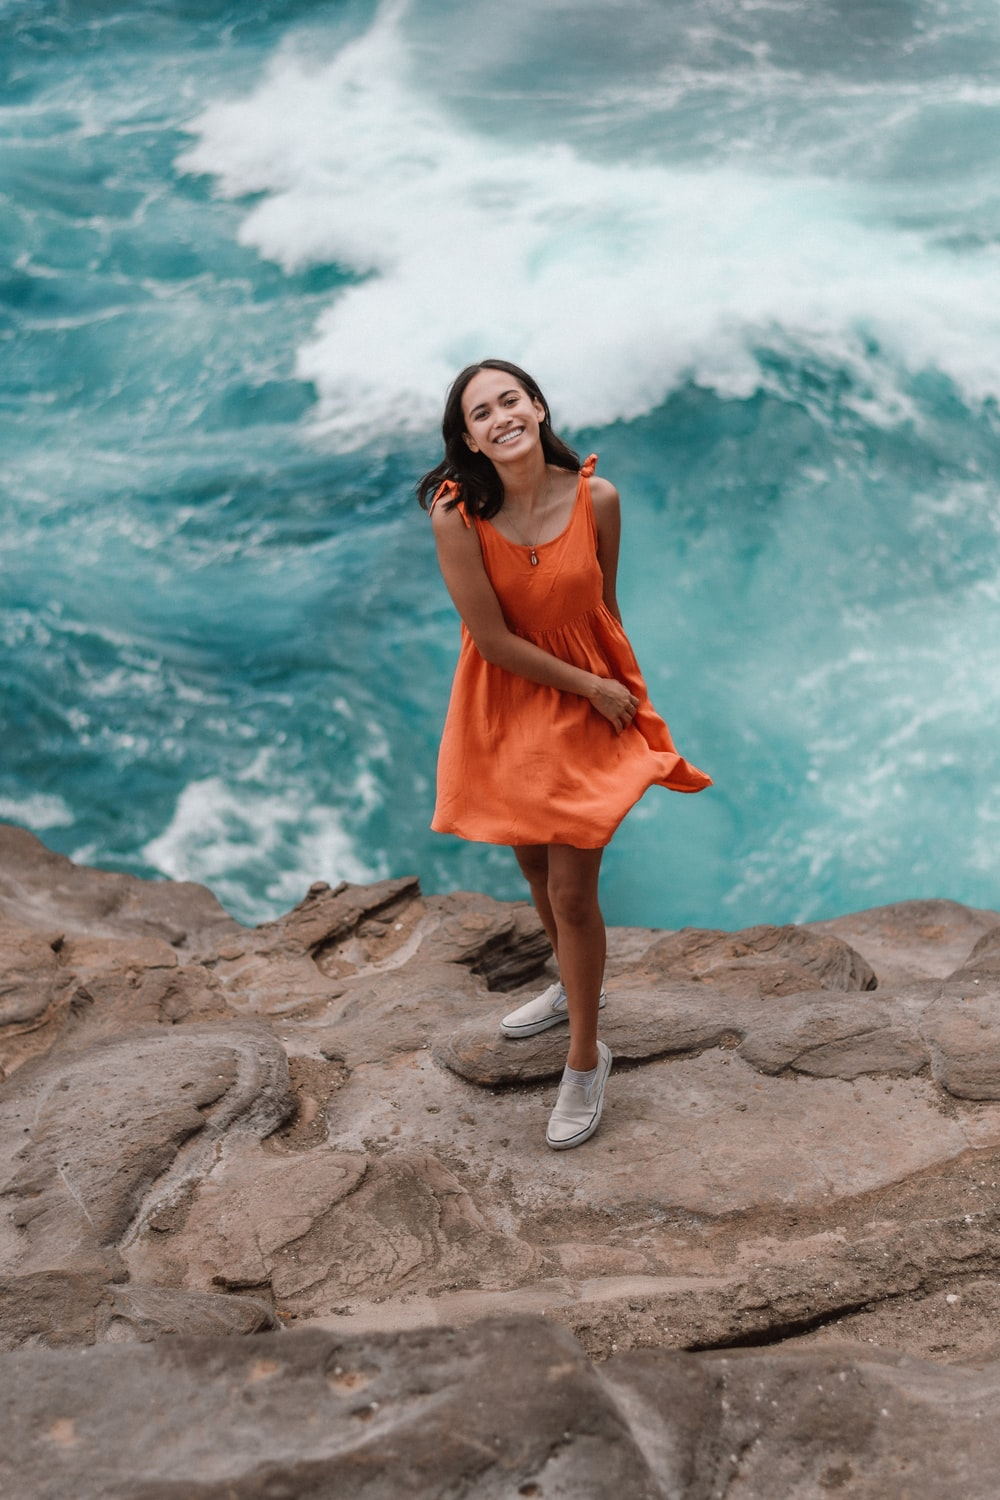 woman in orange sleeveless dress standing on rock formation near body of water during daytime